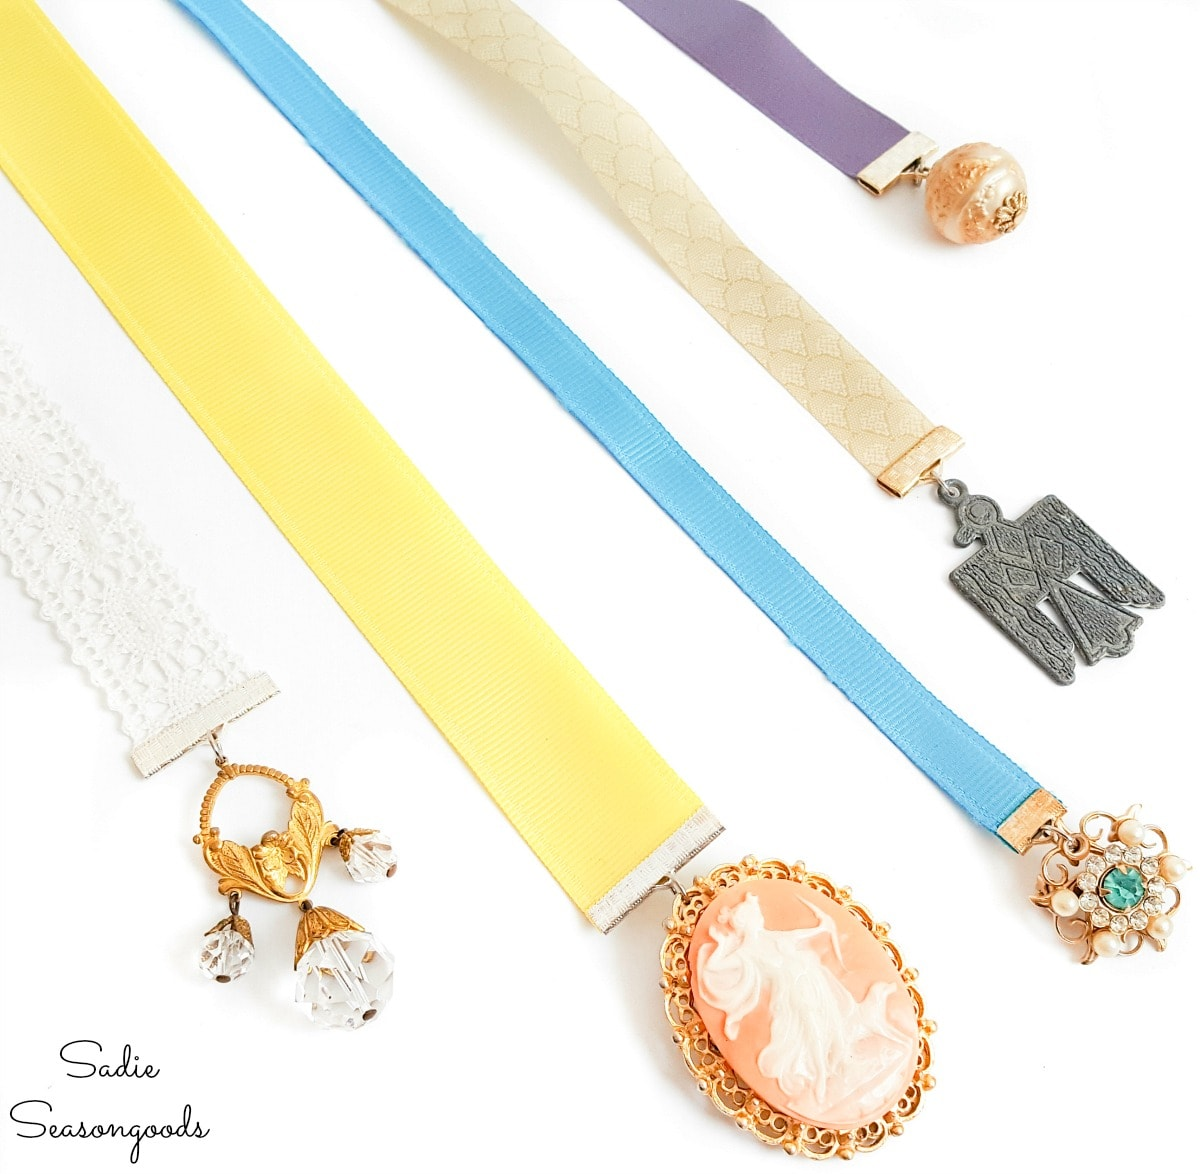 Old jewelry as charms on ribbon bookmarks